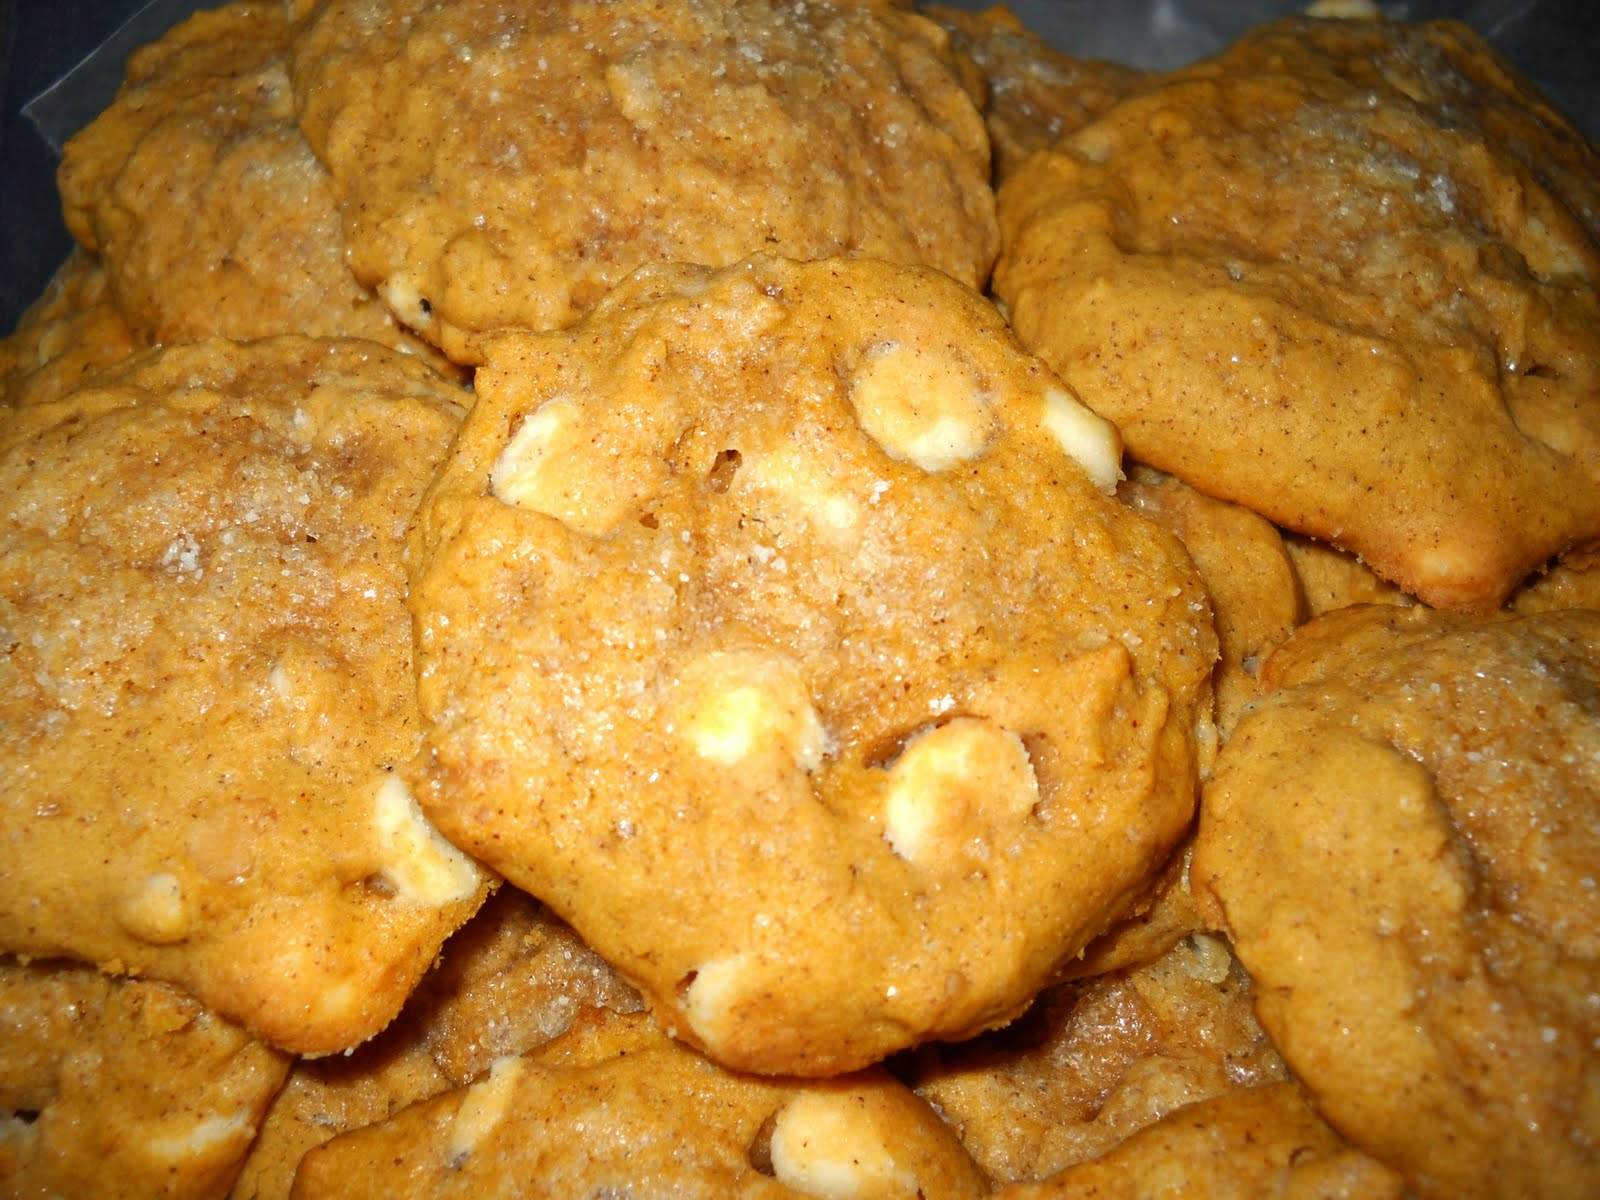 The Toll House Experiment: Macadamia Nut White Chip Pumpkin Cookies